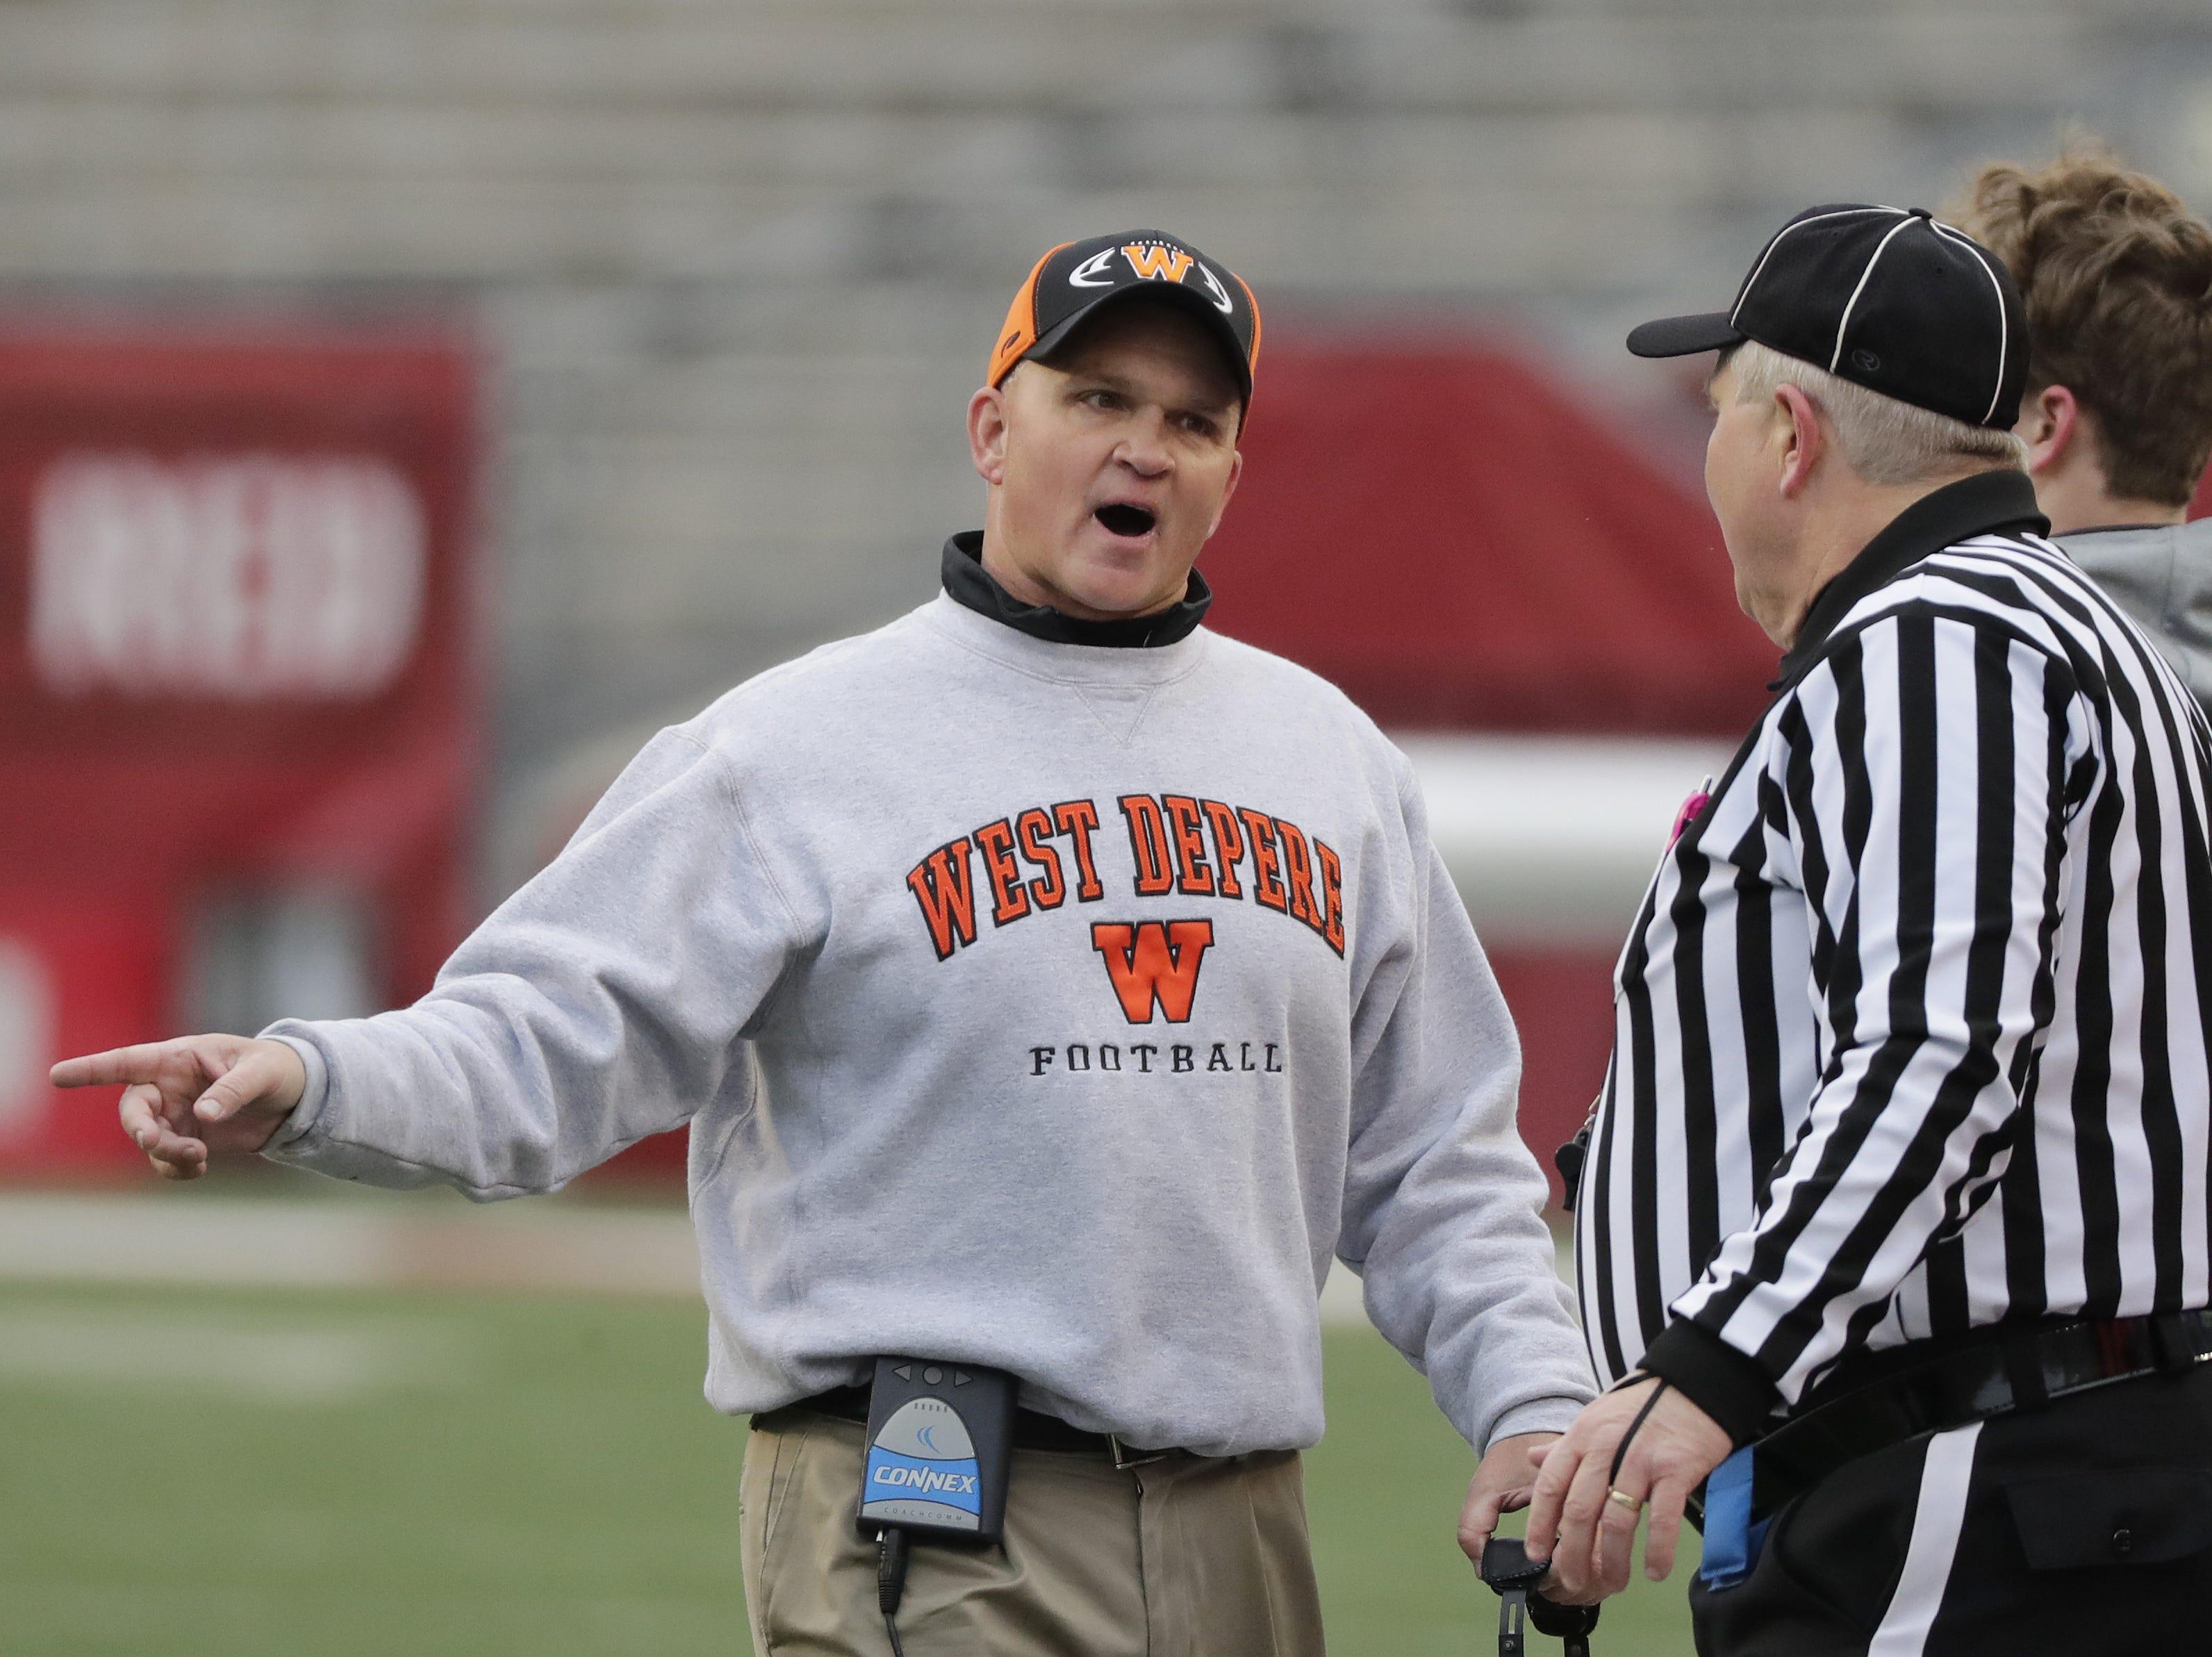 West De Pere's head coach Jack Batten talks to an official during the WIAA Division 3 championship game at Camp Randall Stadium on Friday, November 16, 2018 in Madison, Wis.